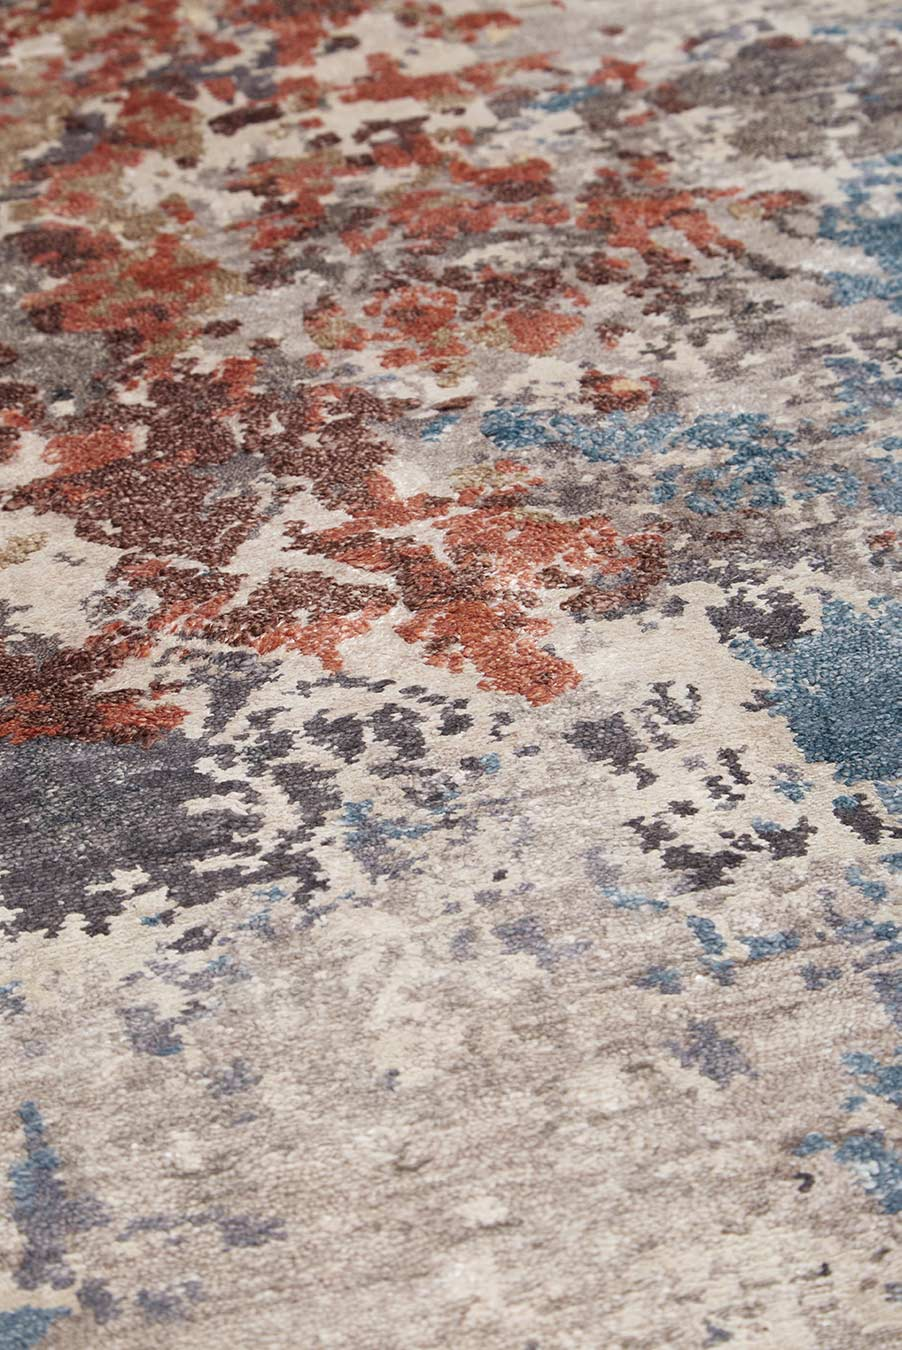 Detailed image of distressed Malaga rug